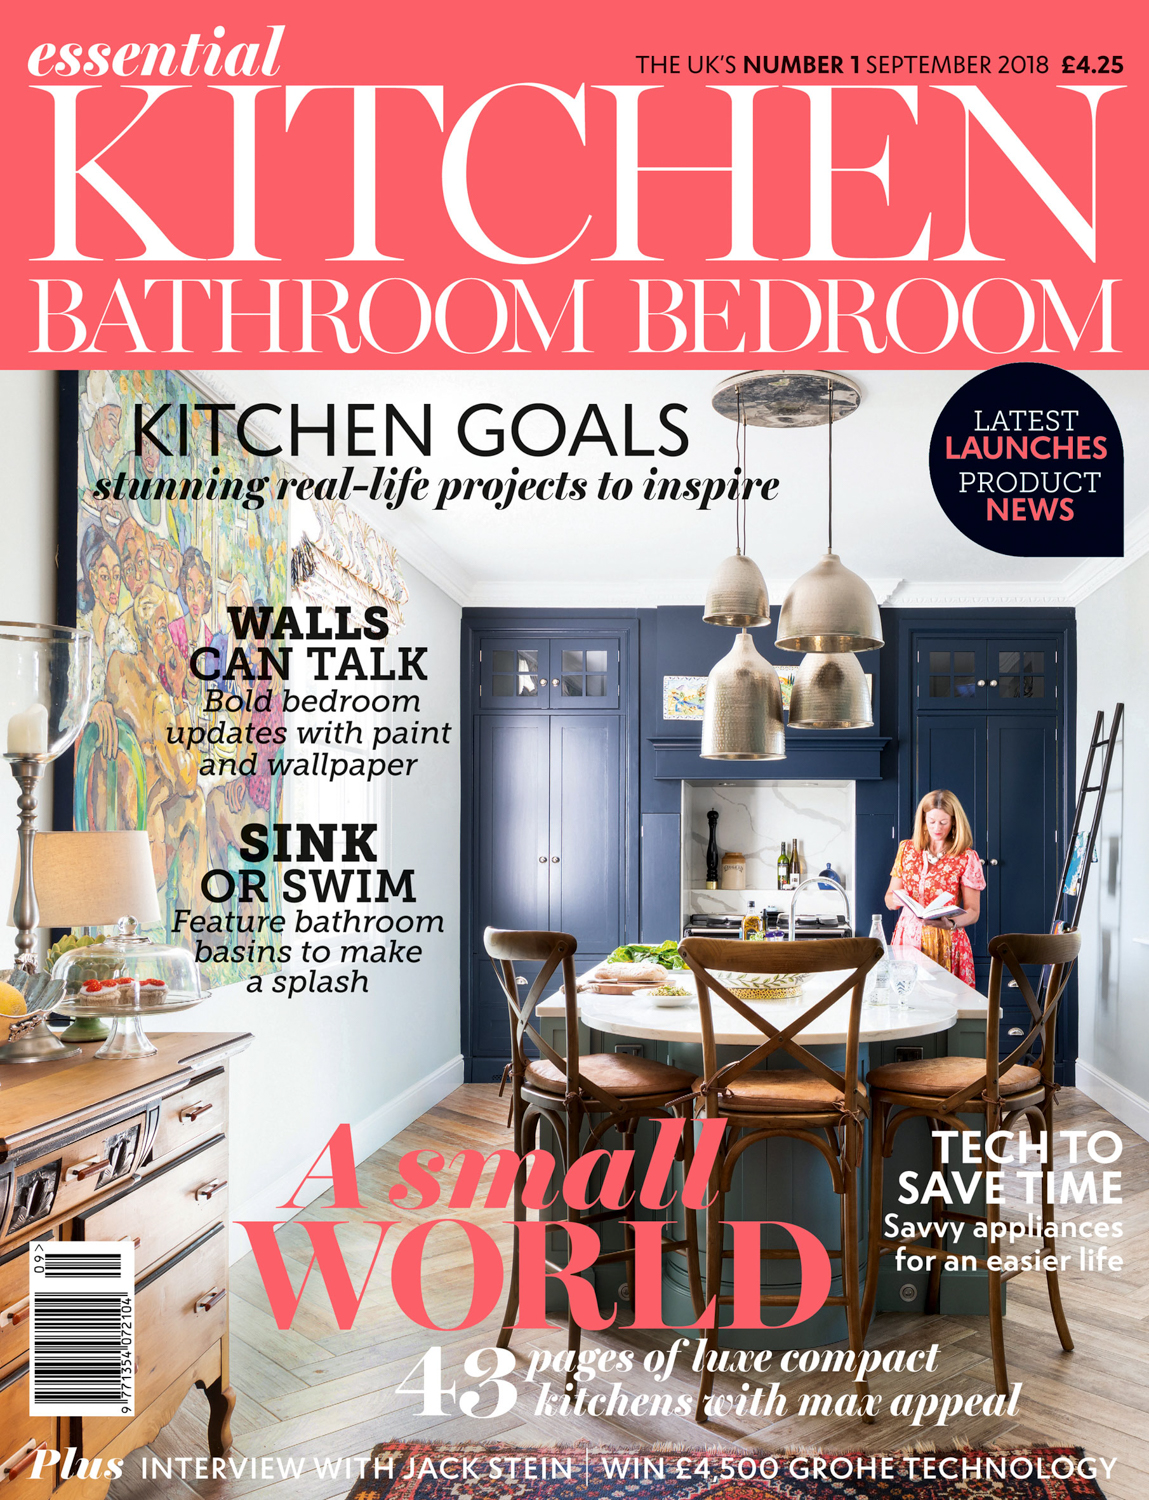 Essential Kitchen Bathroom Bedroom Magazine Cover September 2018 | Paul Craig Interior Photographer